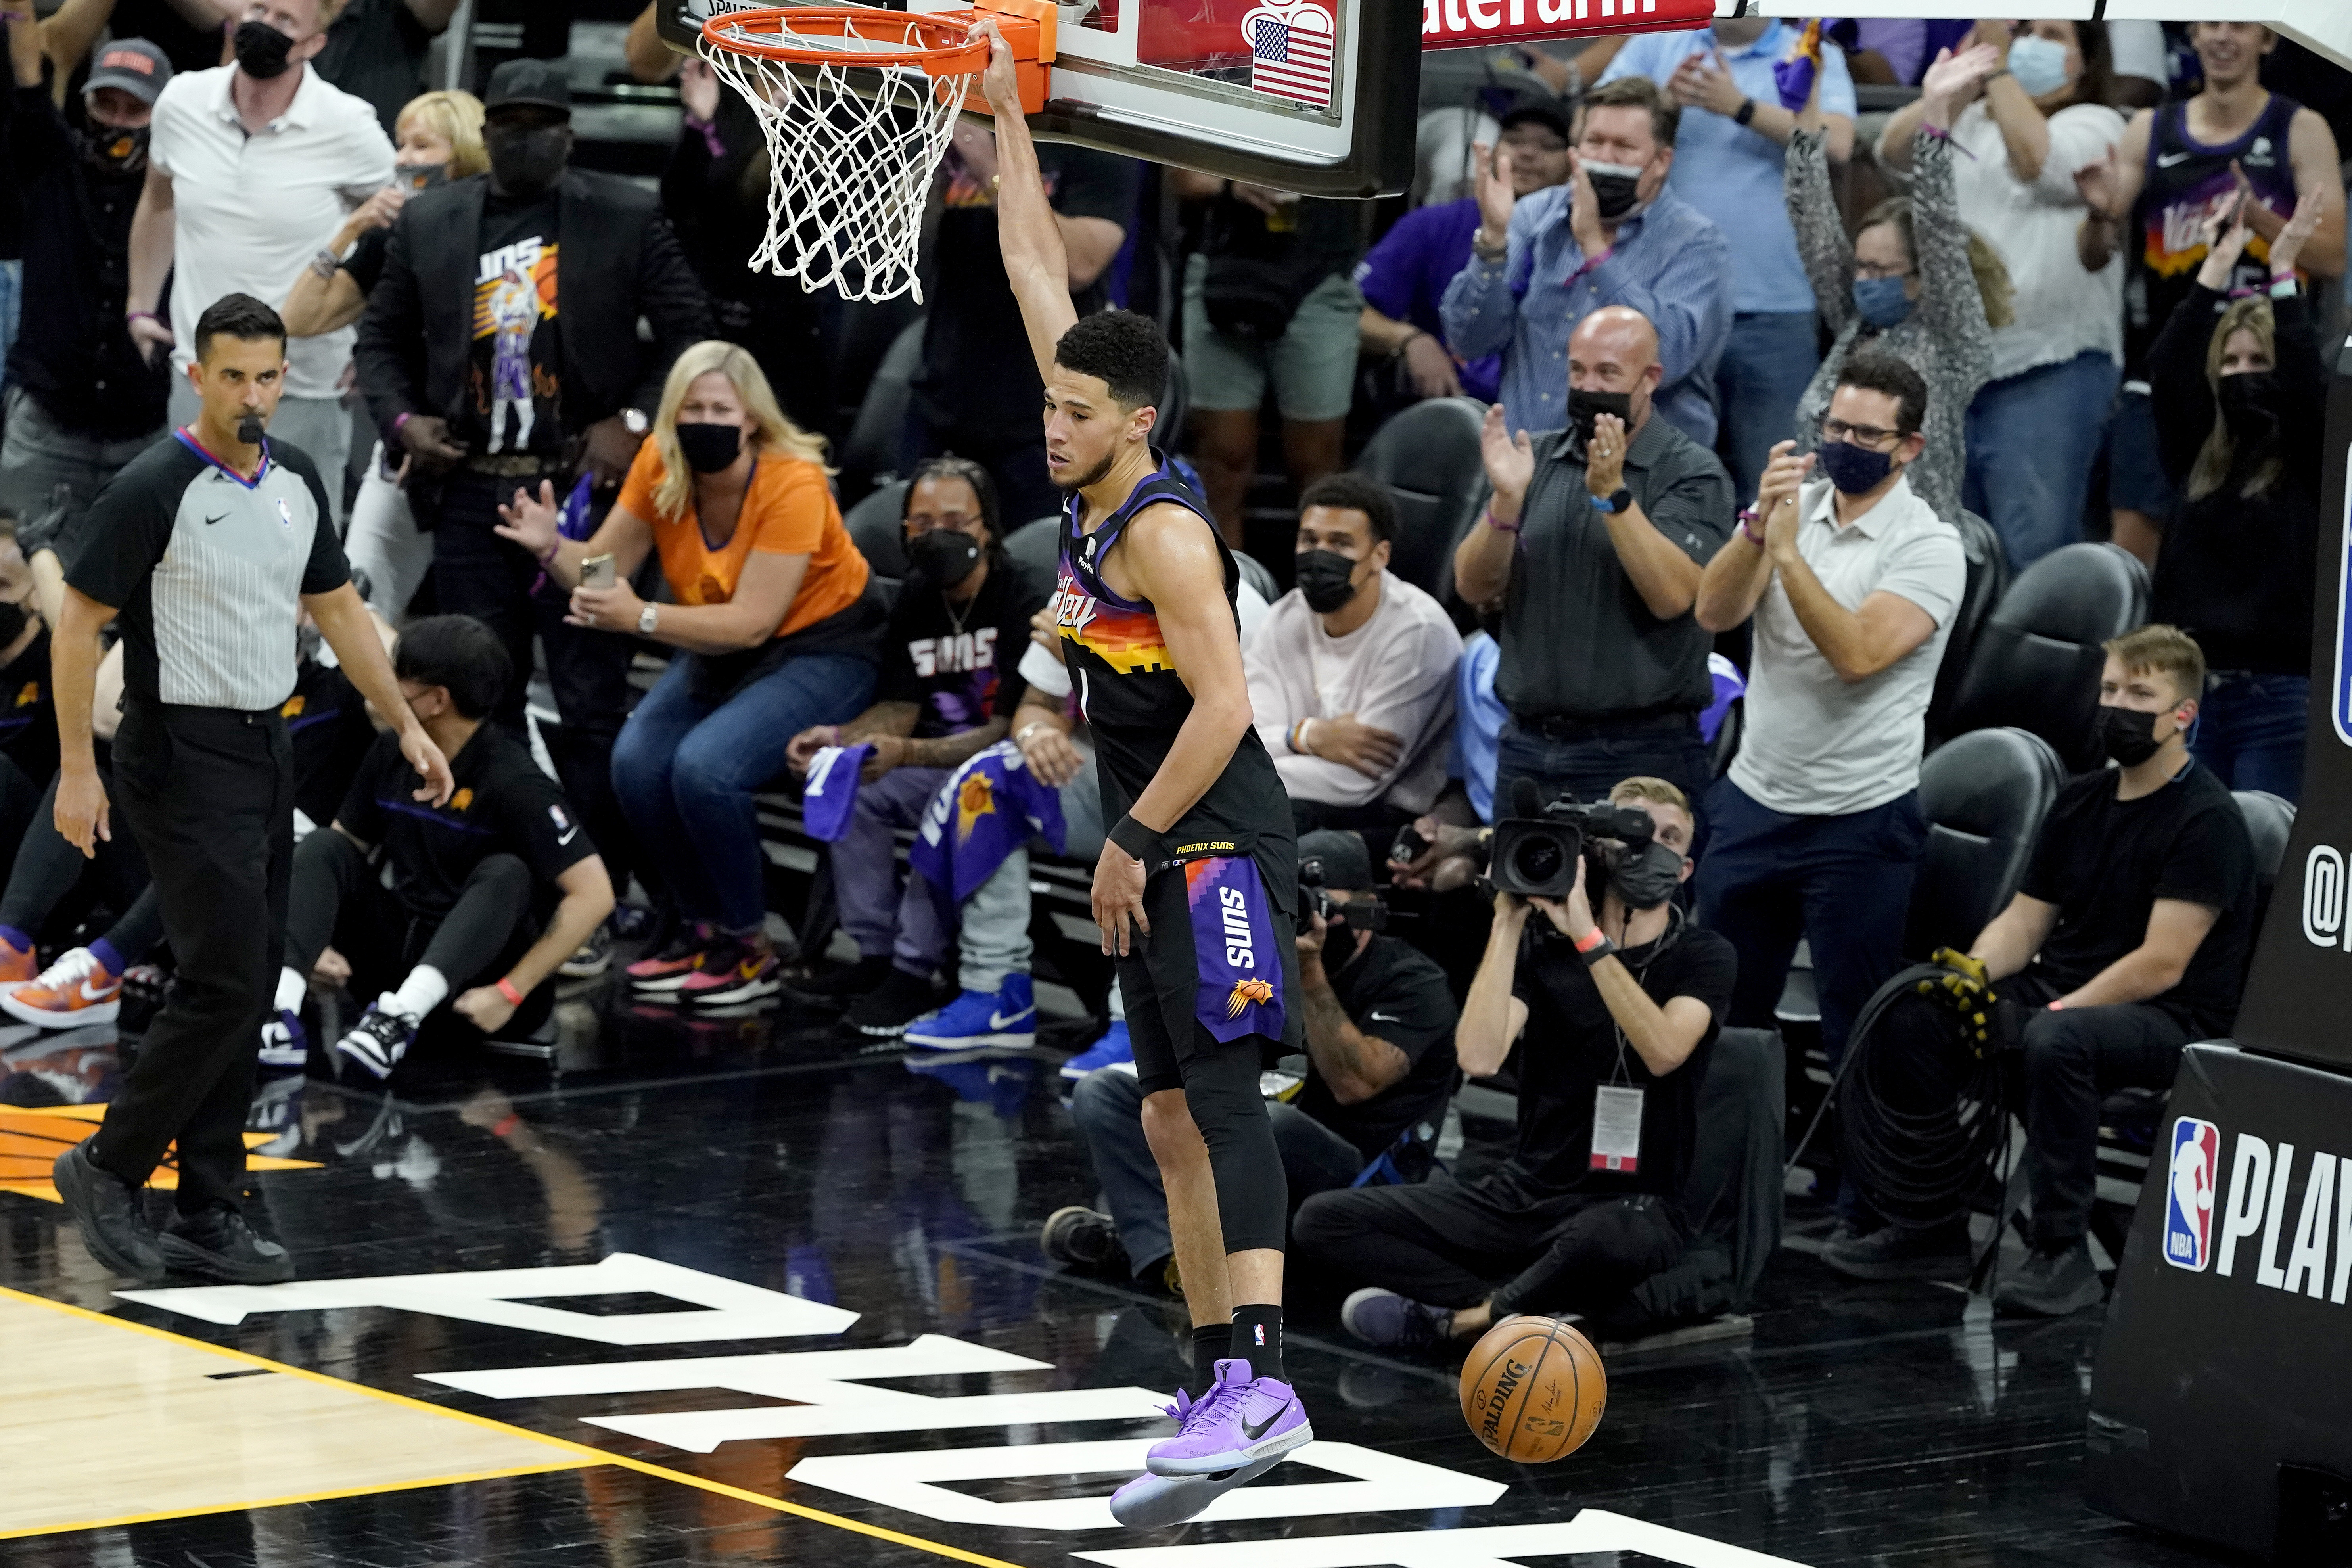 <p>Devin Booker Leads Balanced Attack as Suns Rout Nikola Jokic, Nuggets in Game 2 thumbnail